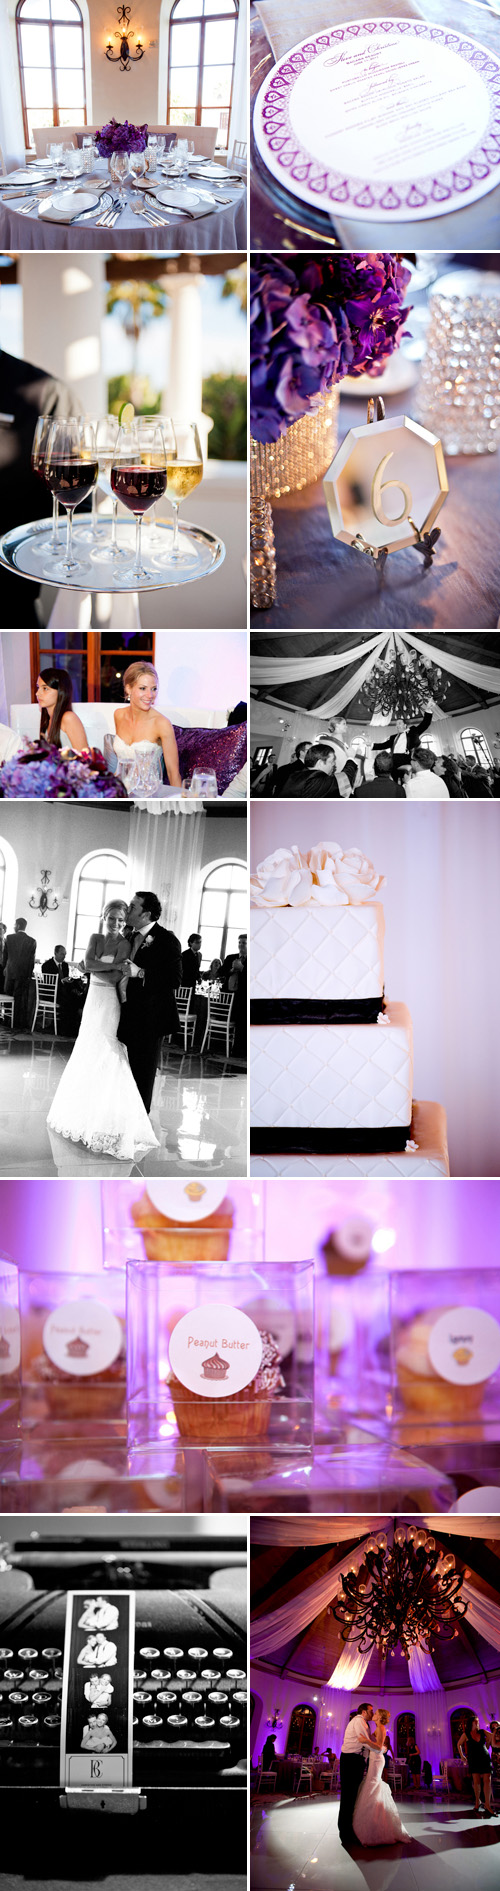 lilac and gray wedding colors, Old Hollywood glamour, Santa Barbara, California wedding at the Bacara Resort by Yvette Roman Photography and La Fete Weddings